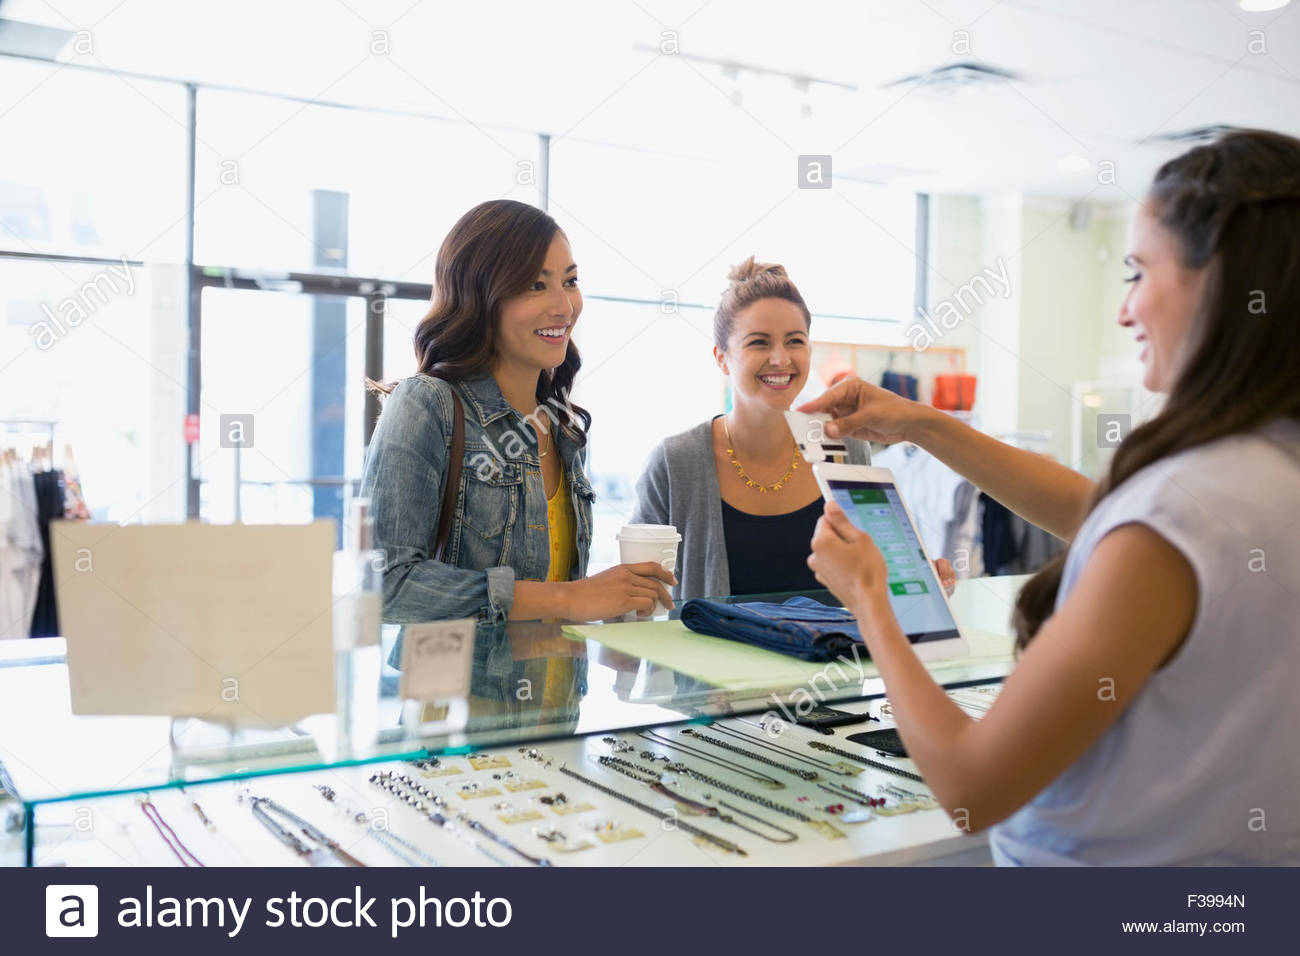 Worker swiping credit card reader digital tablet shop - Stock Image